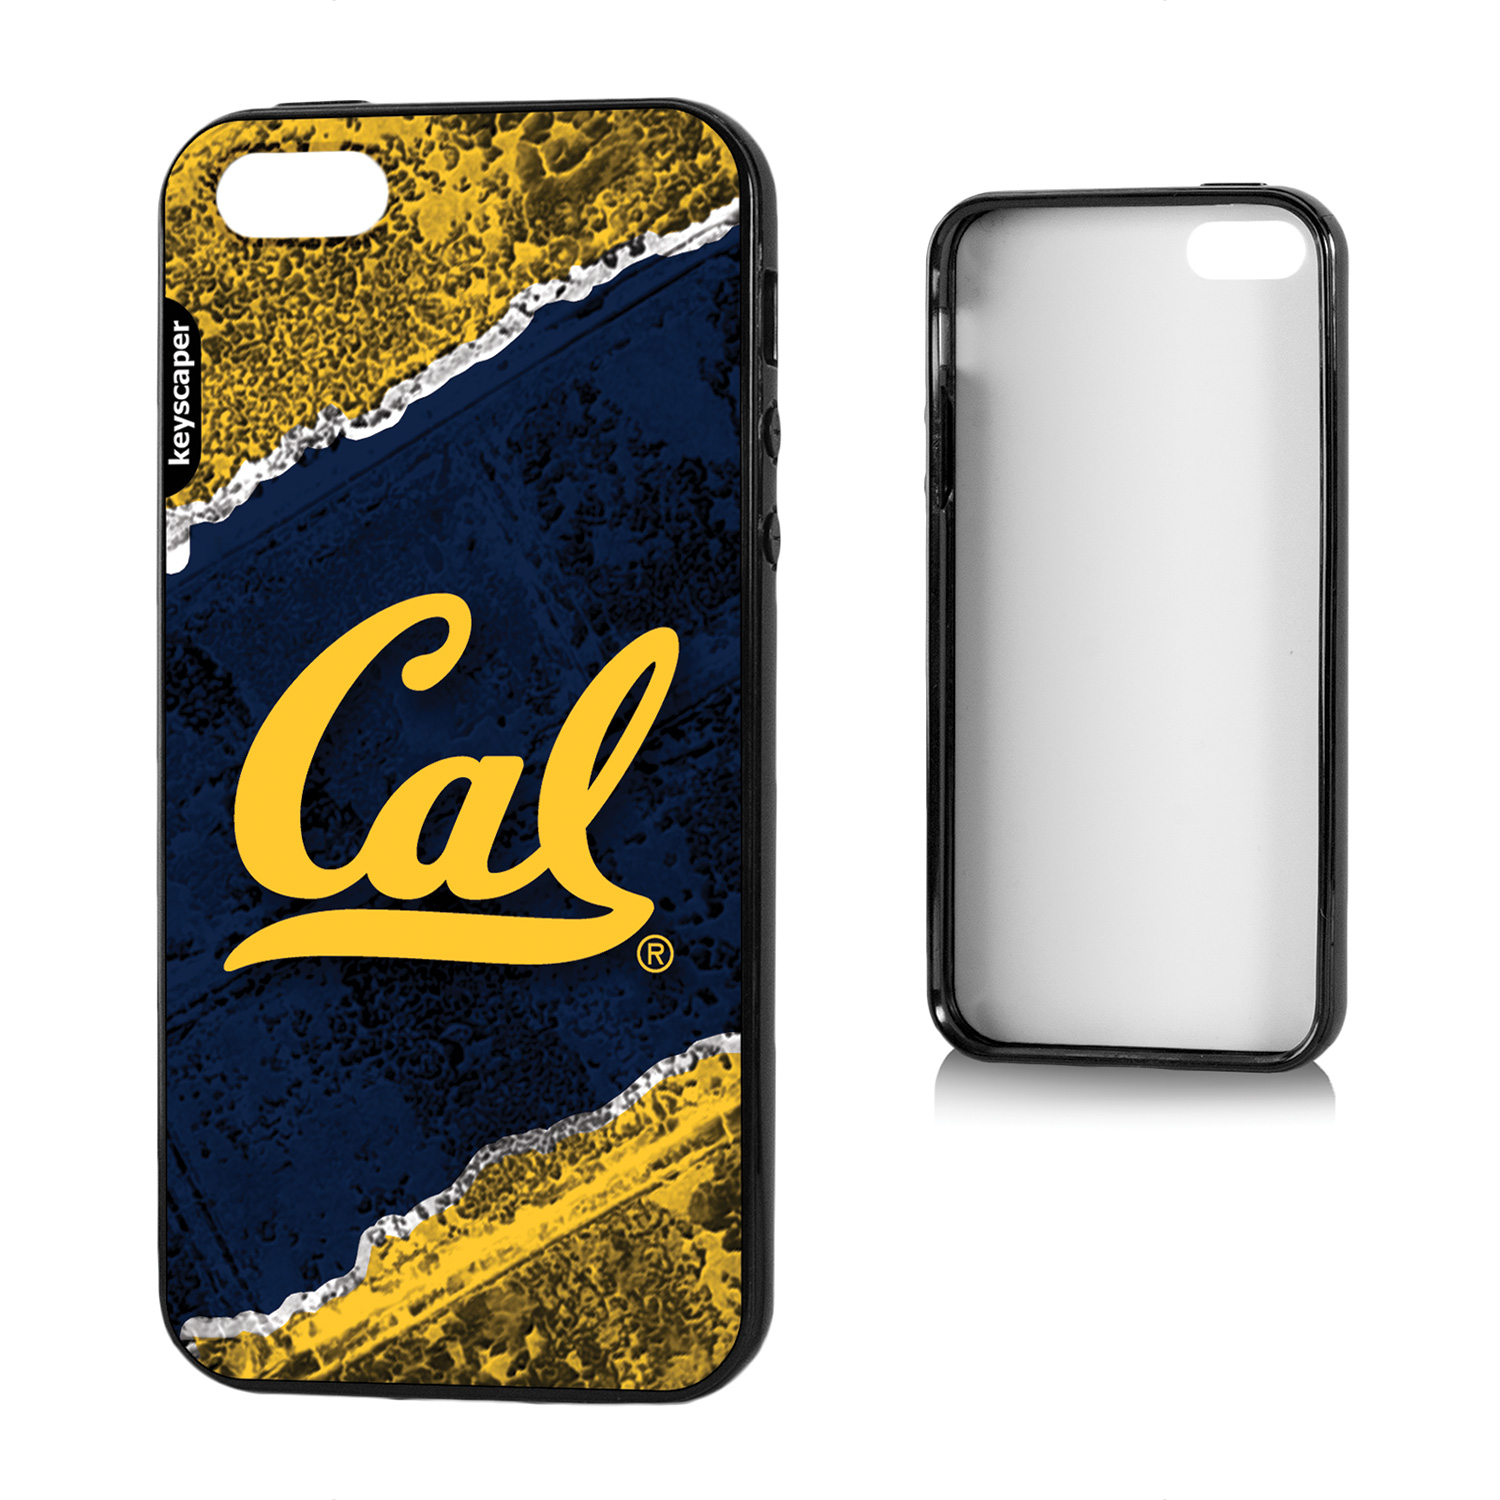 California Golden Bears iPhone 5 and iPhone 5s Bumper Case